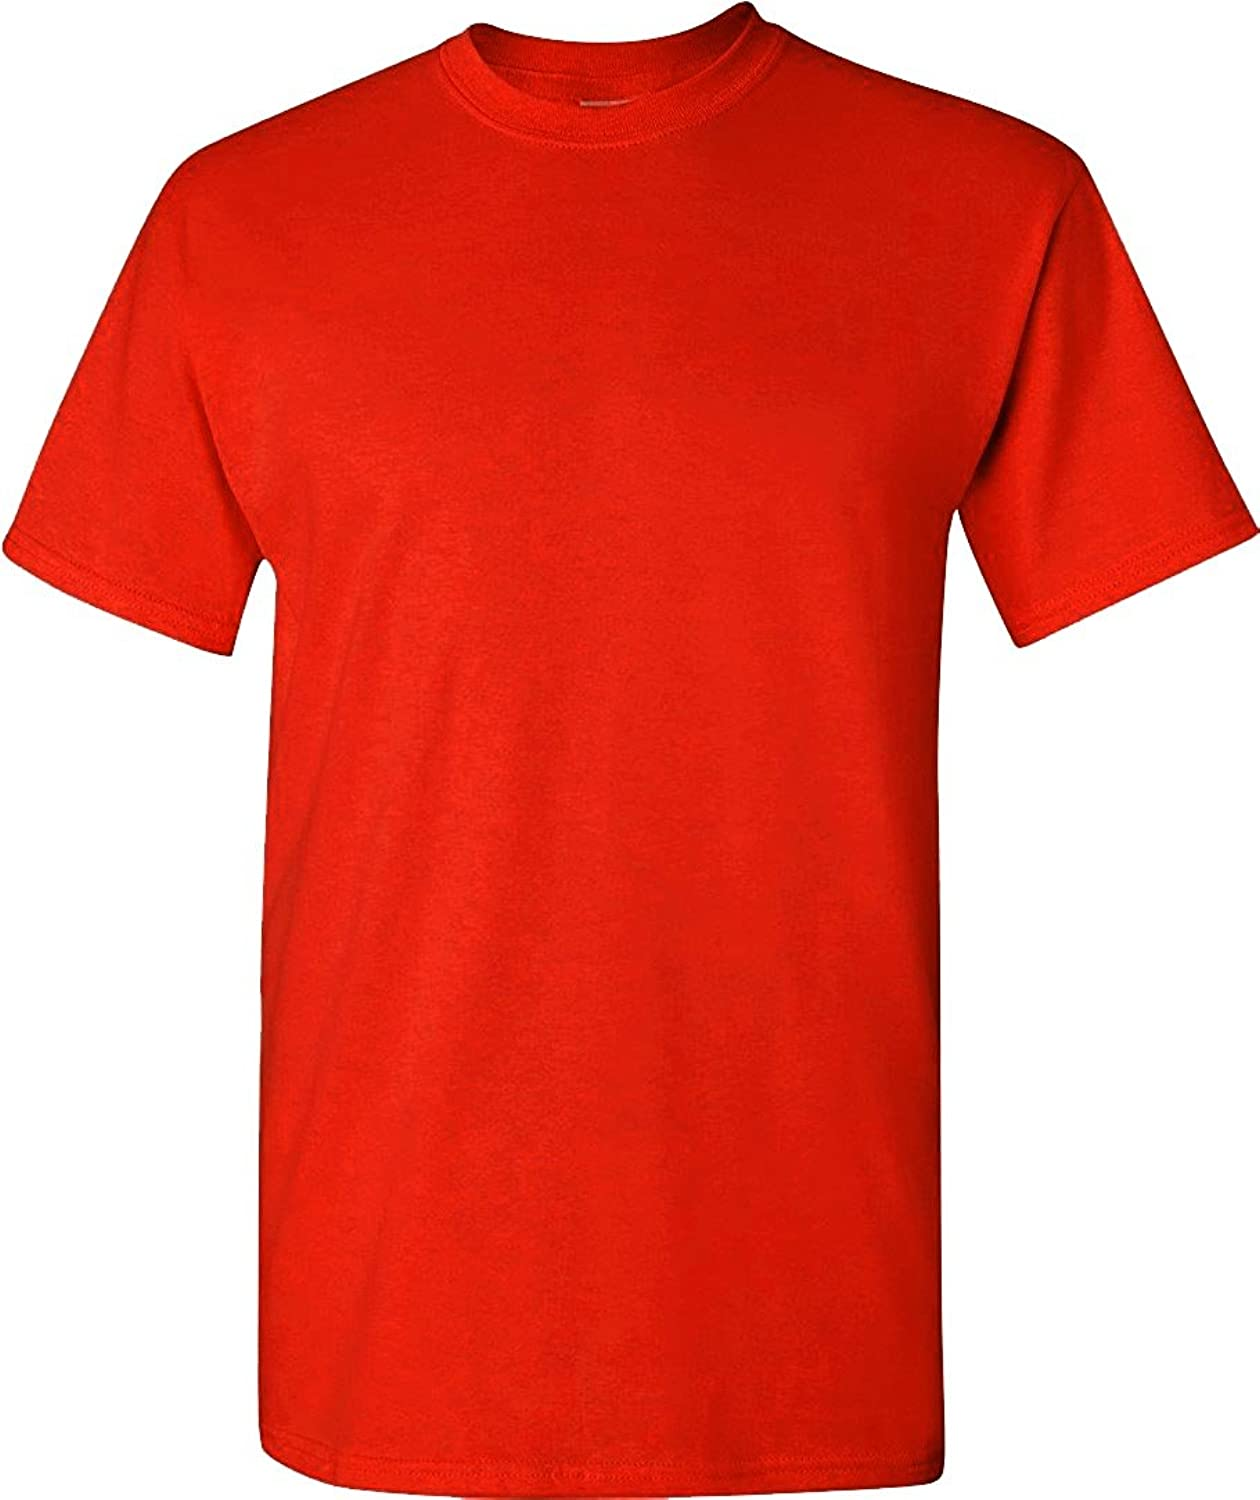 AAA Mens Basic Round Neck T Shirts Solid Short Sleeve Tee S-3XL